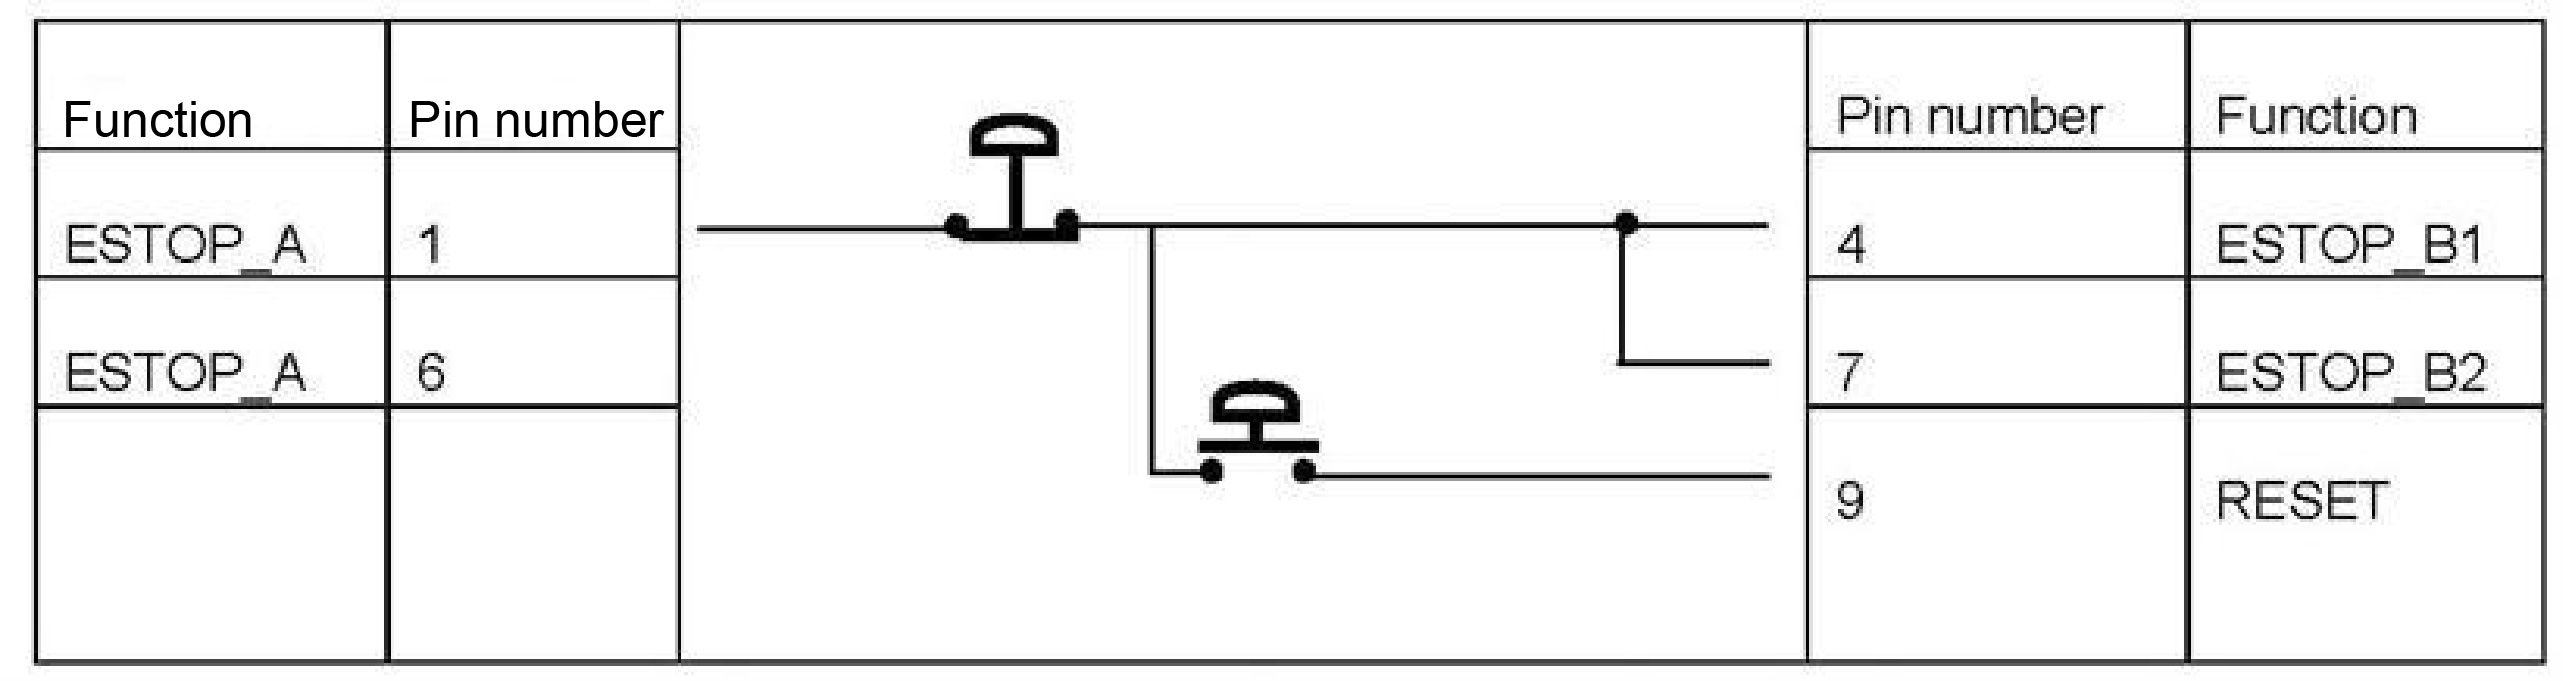 E Stop Circuit Diagram Wiring Schematics Diagram